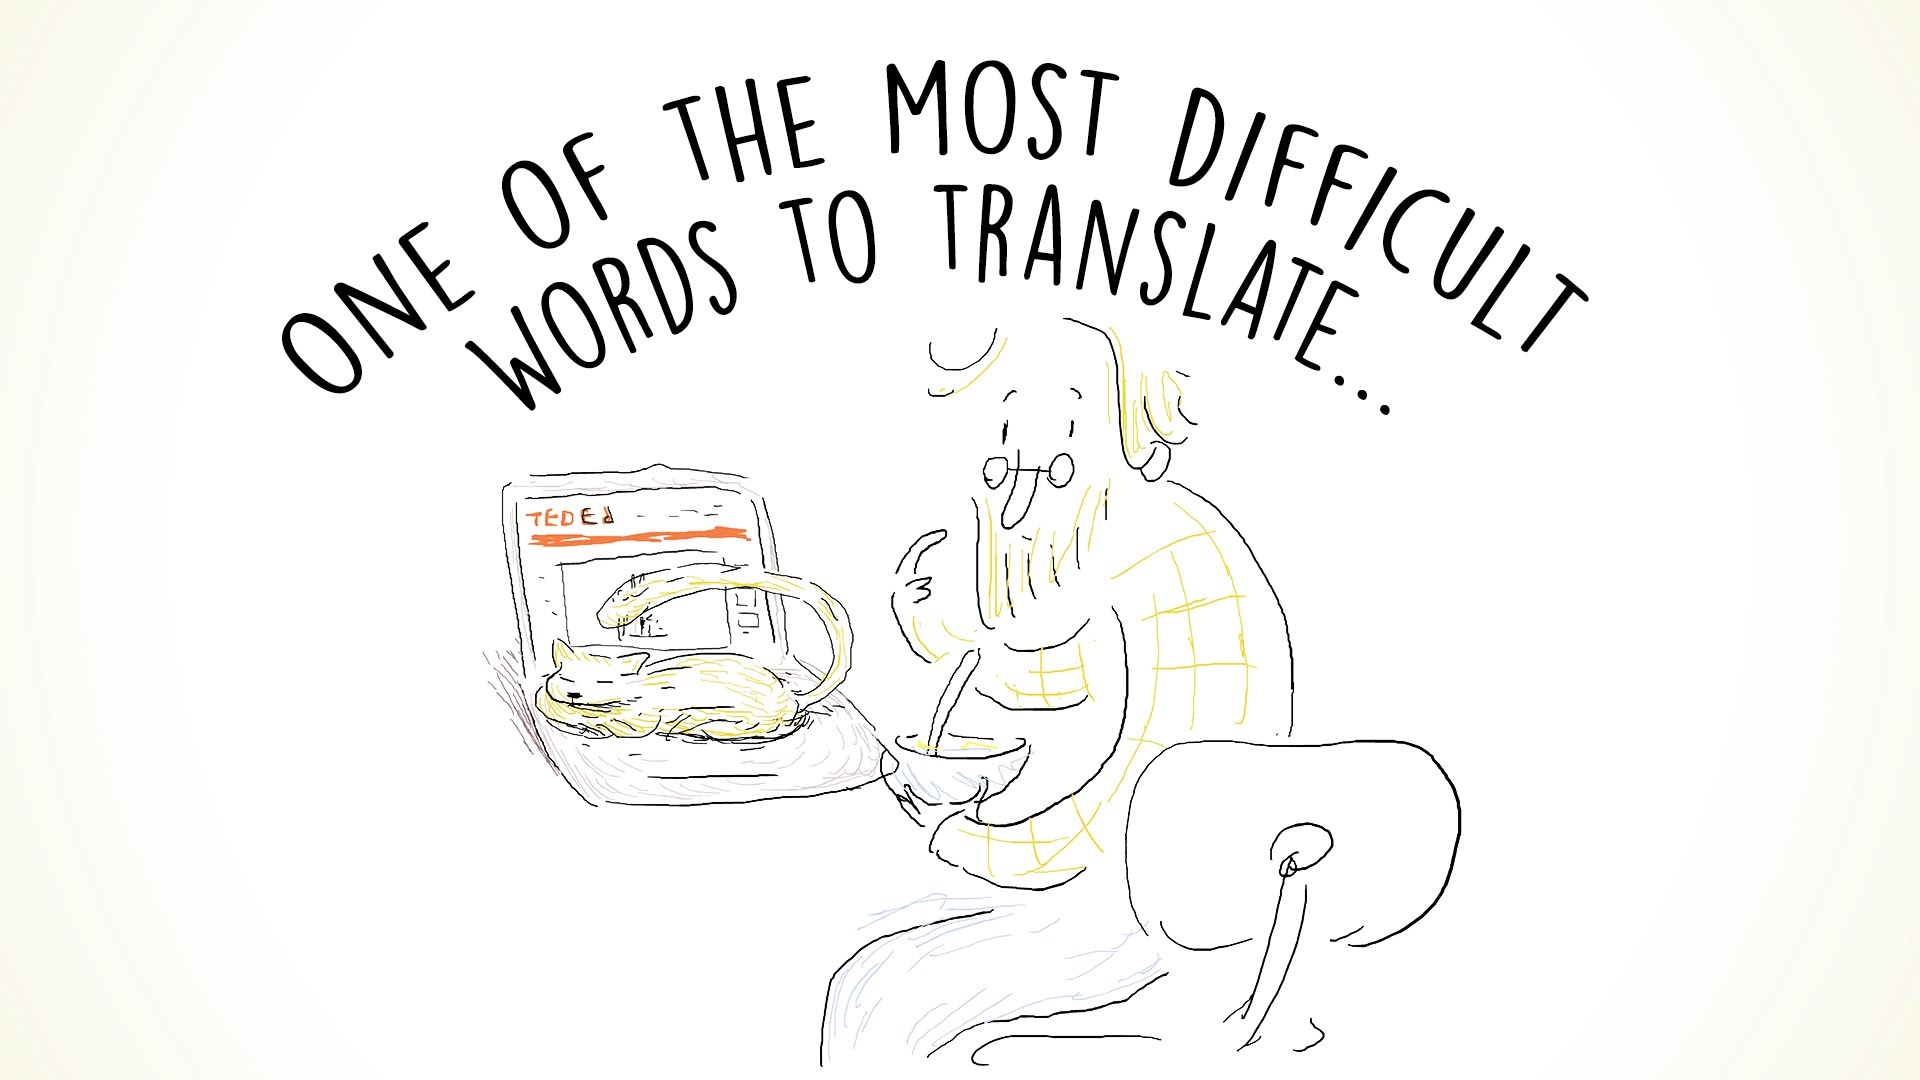 Heres One Of The Most Difficult Words To Translate